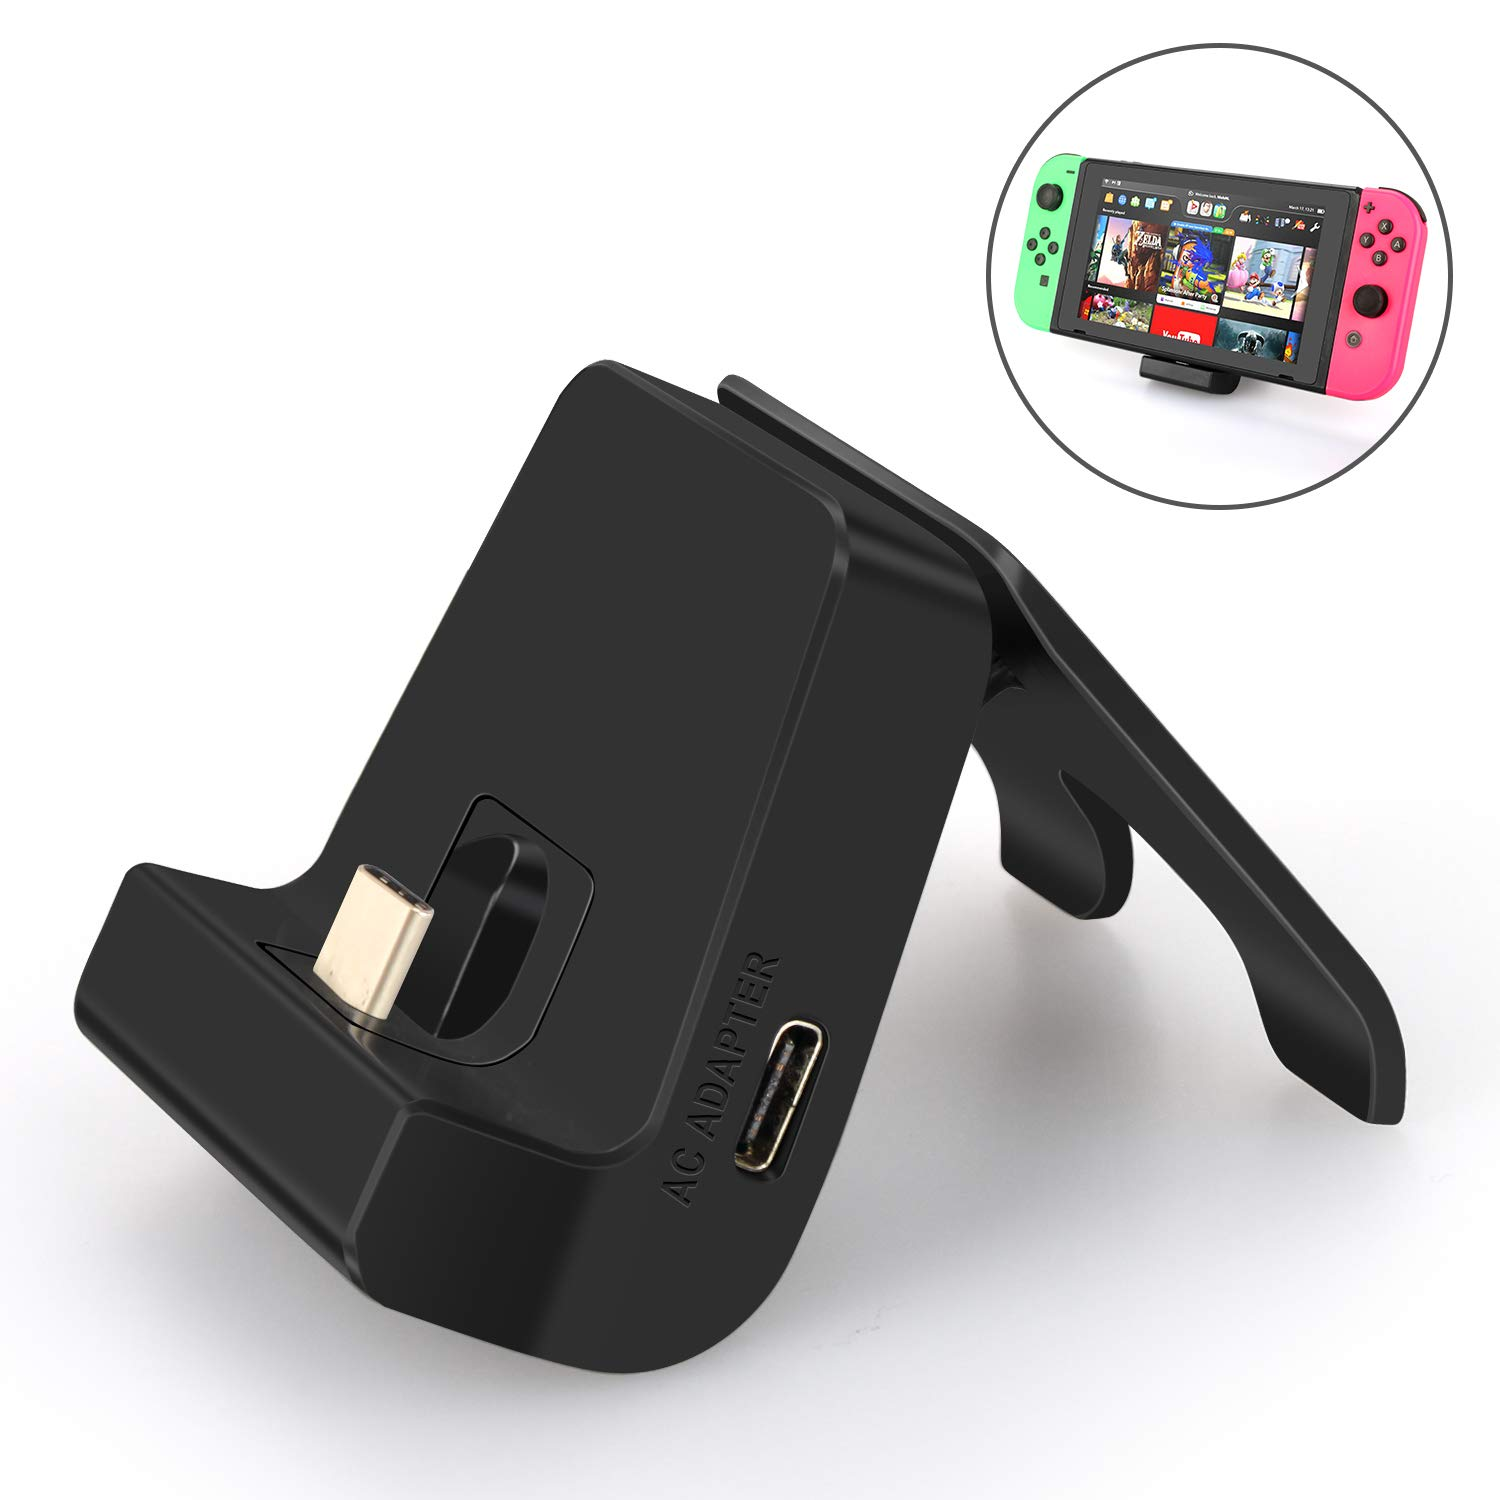 Adjustable Charging stand for Nintendo Switch,Multi-angle Compact Tabletop Mode Playstand for Nintendo Switch Dock Station with USB-C Fast Charging Port